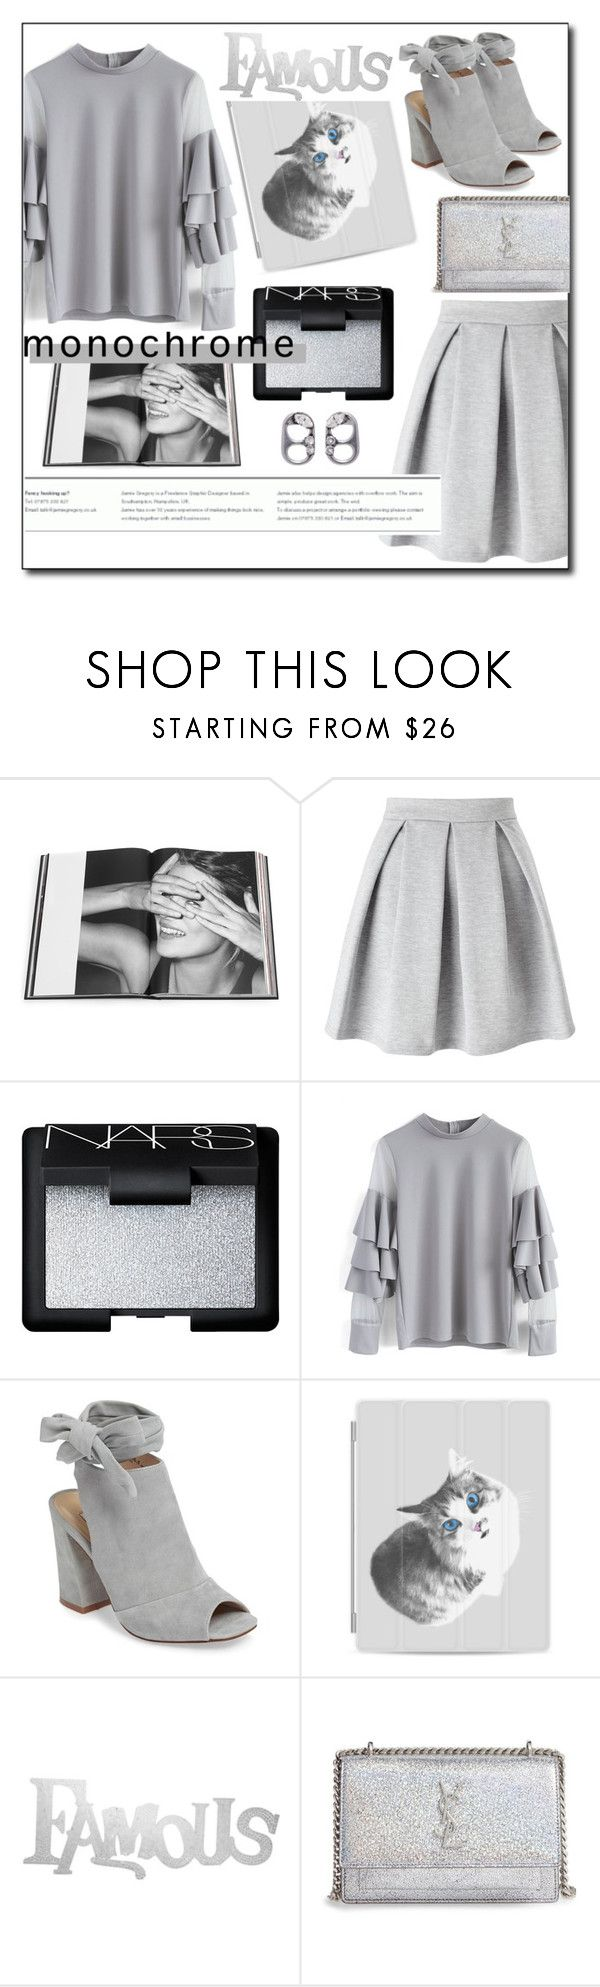 """One Color, Head to Toe #1"" by channdid ❤ liked on Polyvore featuring Rizzoli Publishing, Miss Selfridge, NARS Cosmetics, Chicwish, Kristin Cavallari, Casetify, PBteen, Yves Saint Laurent, Marc Jacobs and monochrome"